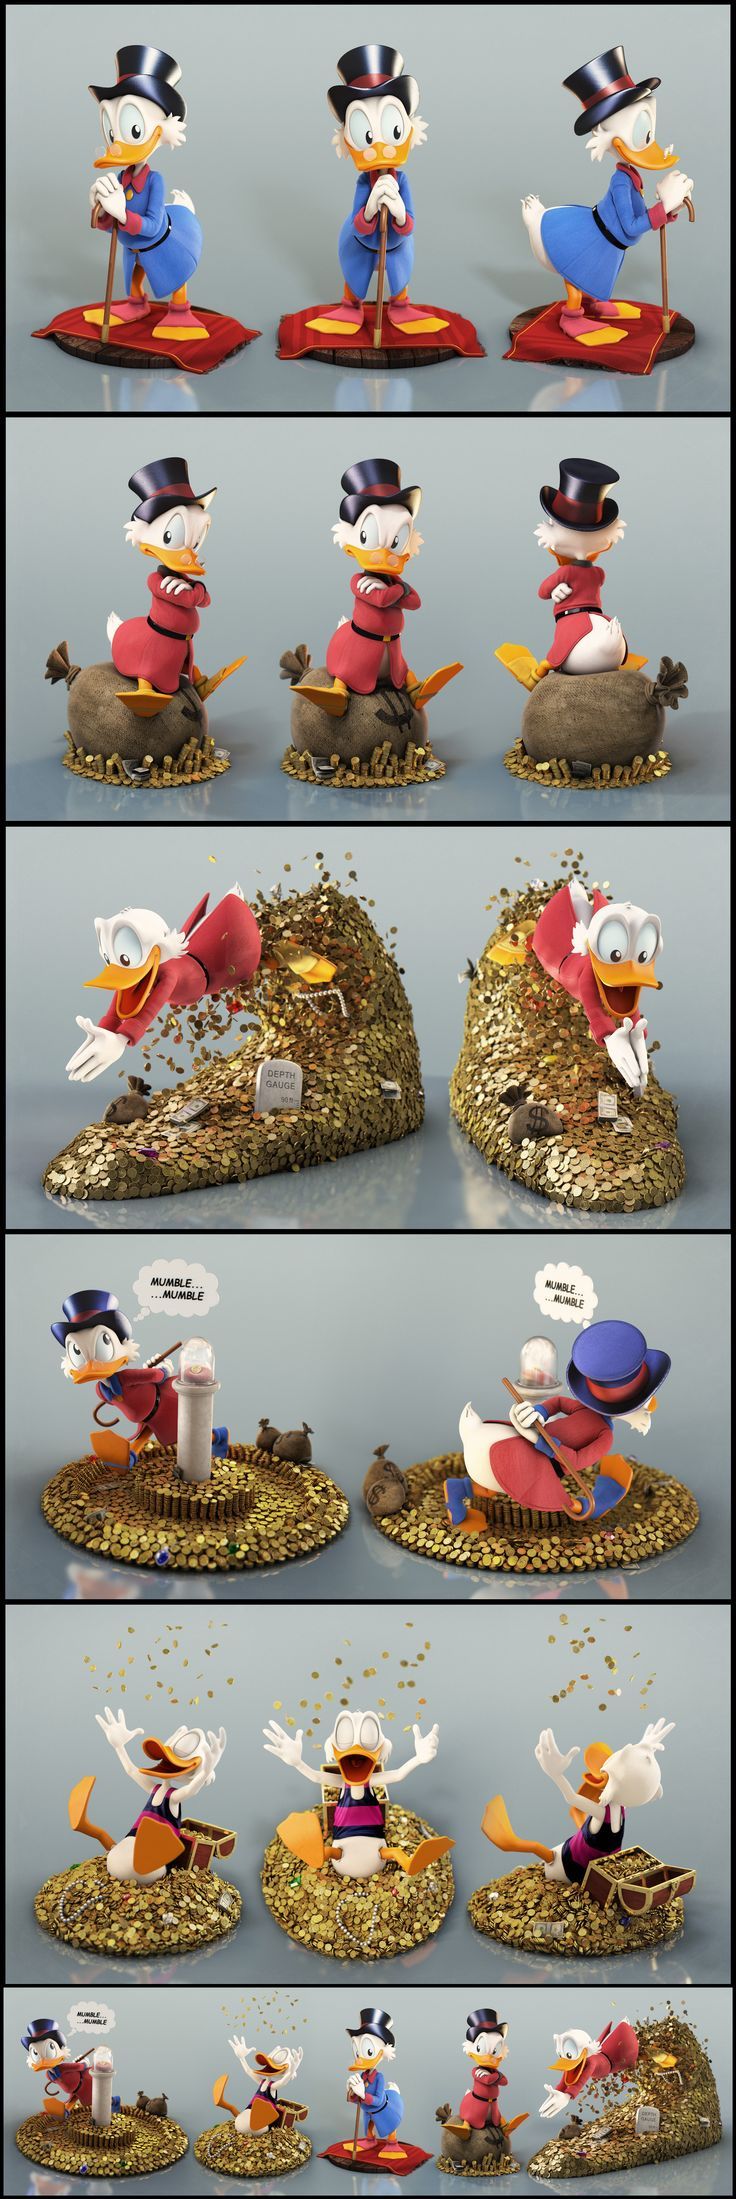 Uncle Scrooge by Eder Carfagnini 1920px X 5738px